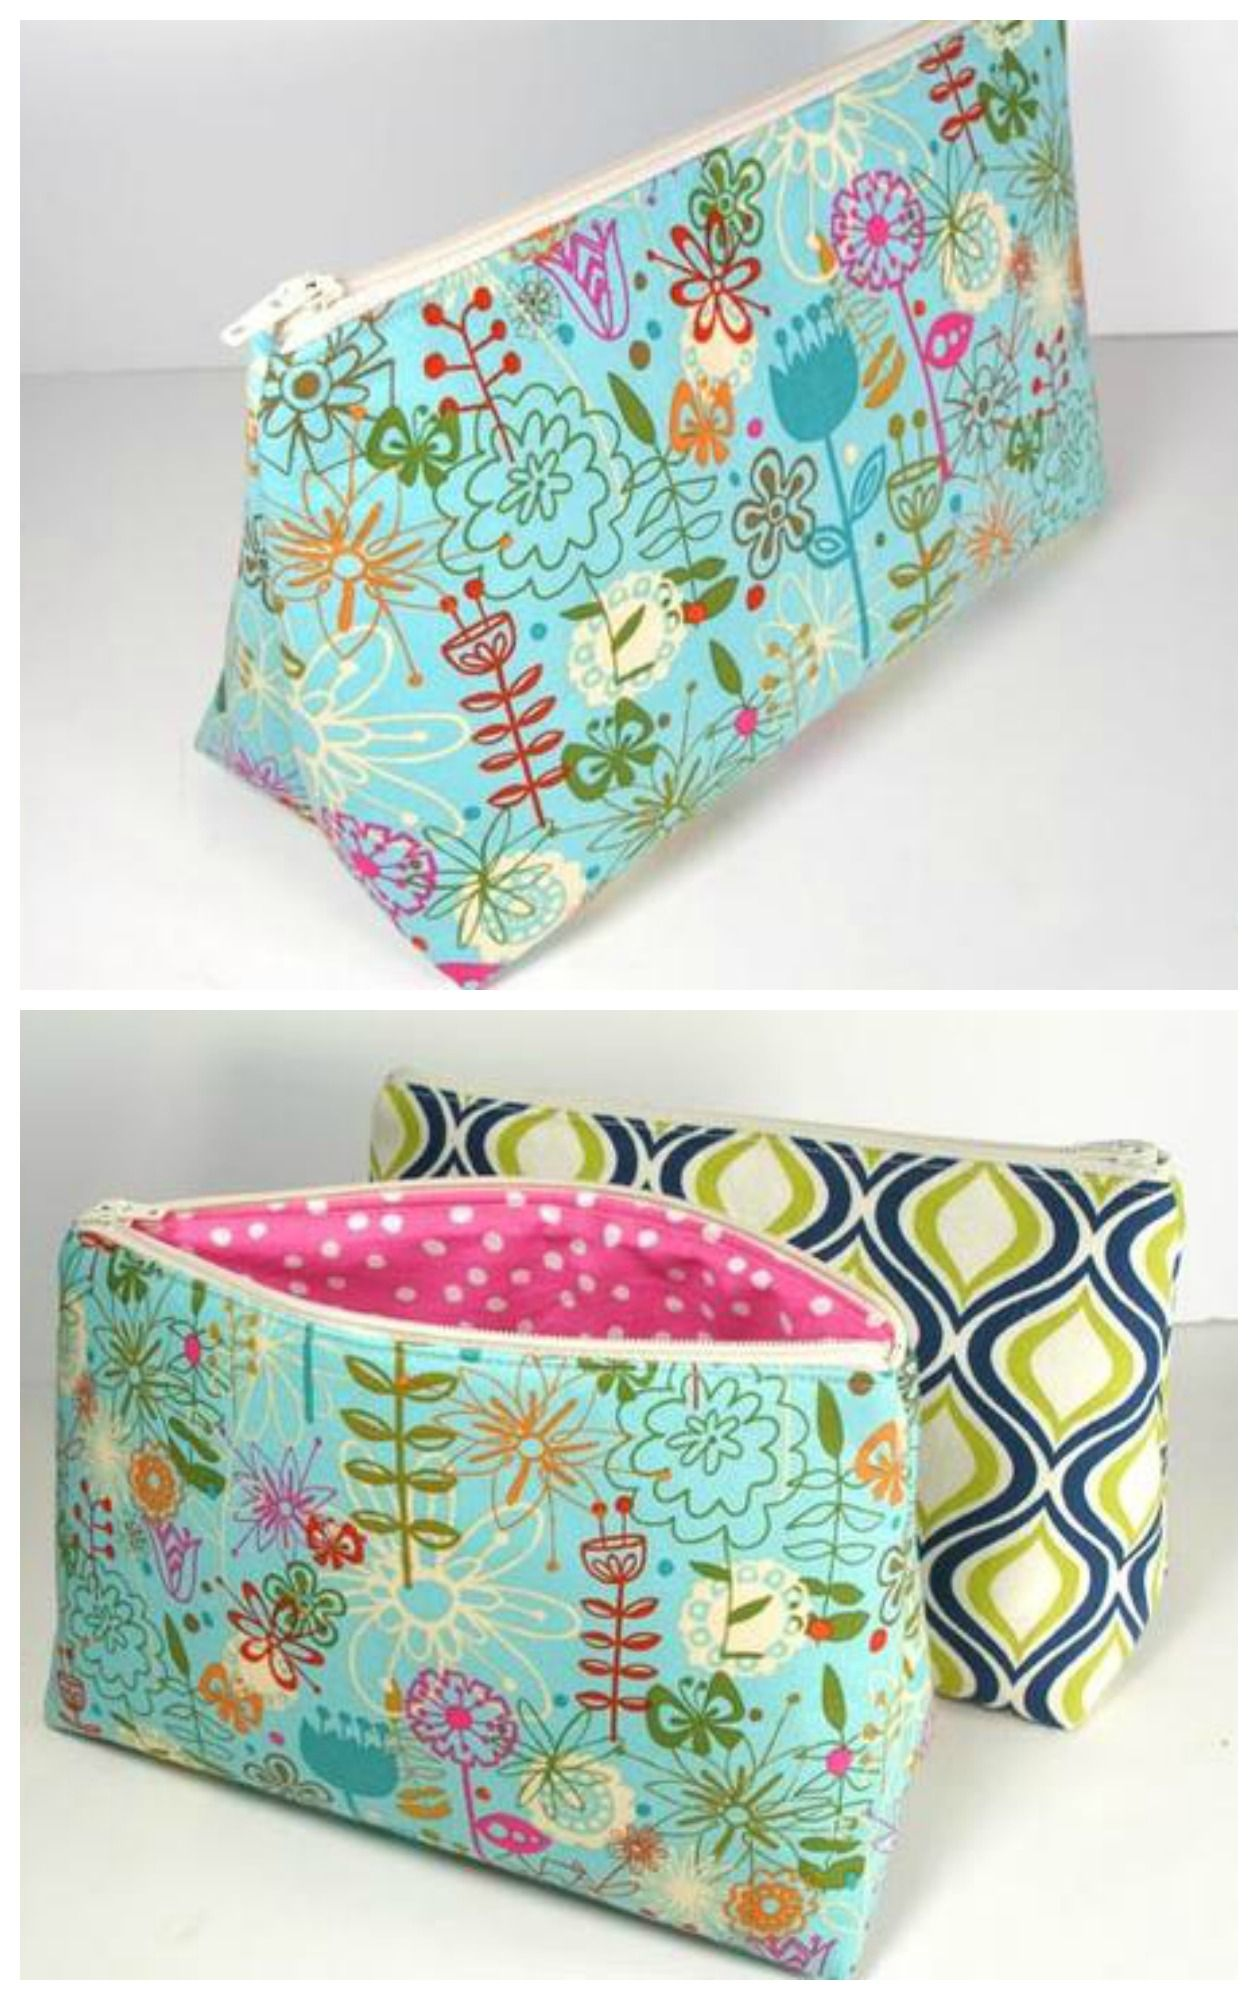 Free sewing pattern and full video tutorial for this great handbags wallets free sewing pattern and full video tutorial for this great cosmetics bag how should we combine handbags and wallets jeuxipadfo Choice Image